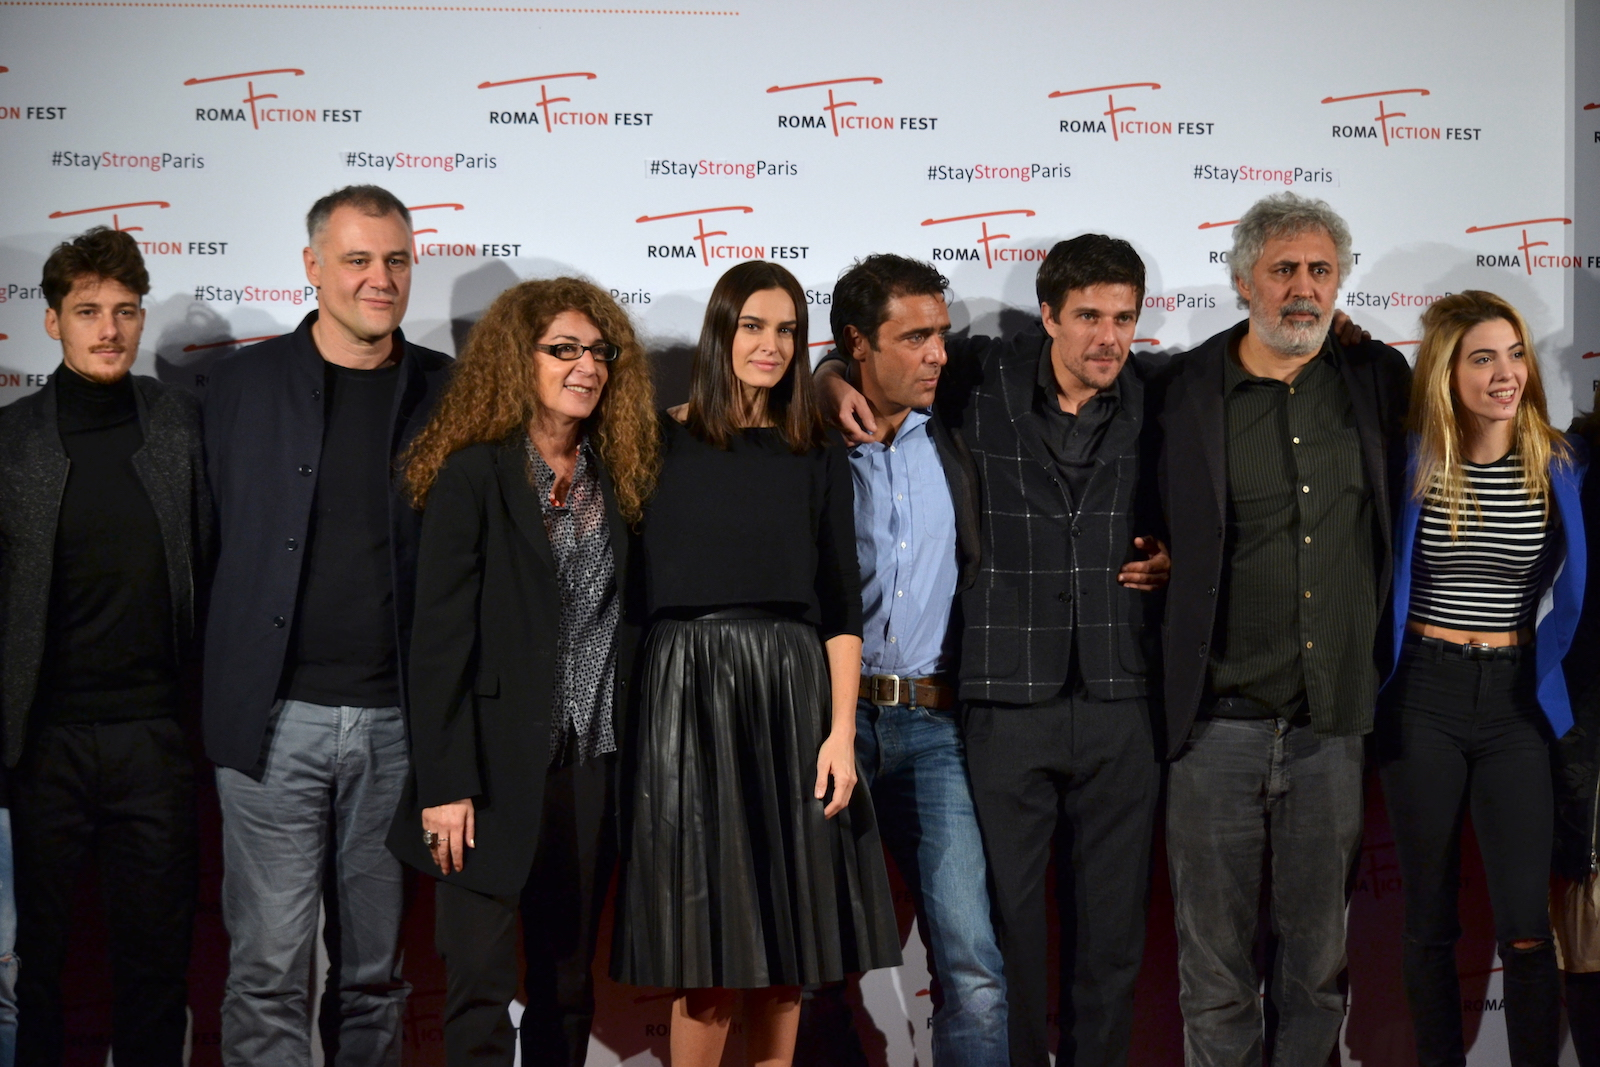 Roma Fiction Fest 2015: Lucio Pellegrini, Kasia Smutniak, Adriano Giannini, Antonio Folletto, Francesco Piccolo, Domenico Diele, Melania Mazzucco al photocall di Limbo